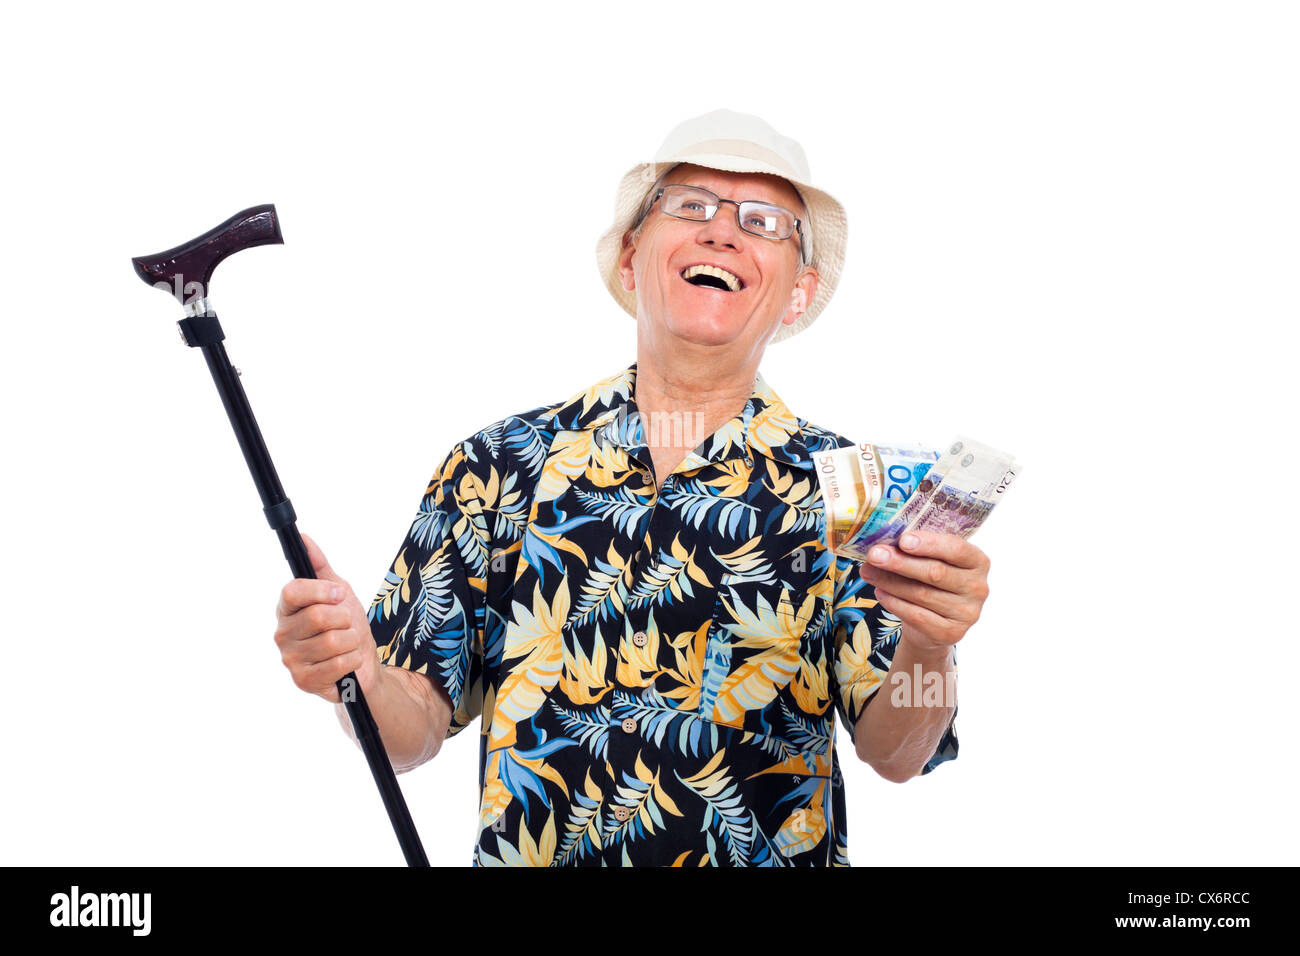 Happy excited wealthy senior man holding money and cane, isolated on white background. - Stock Image